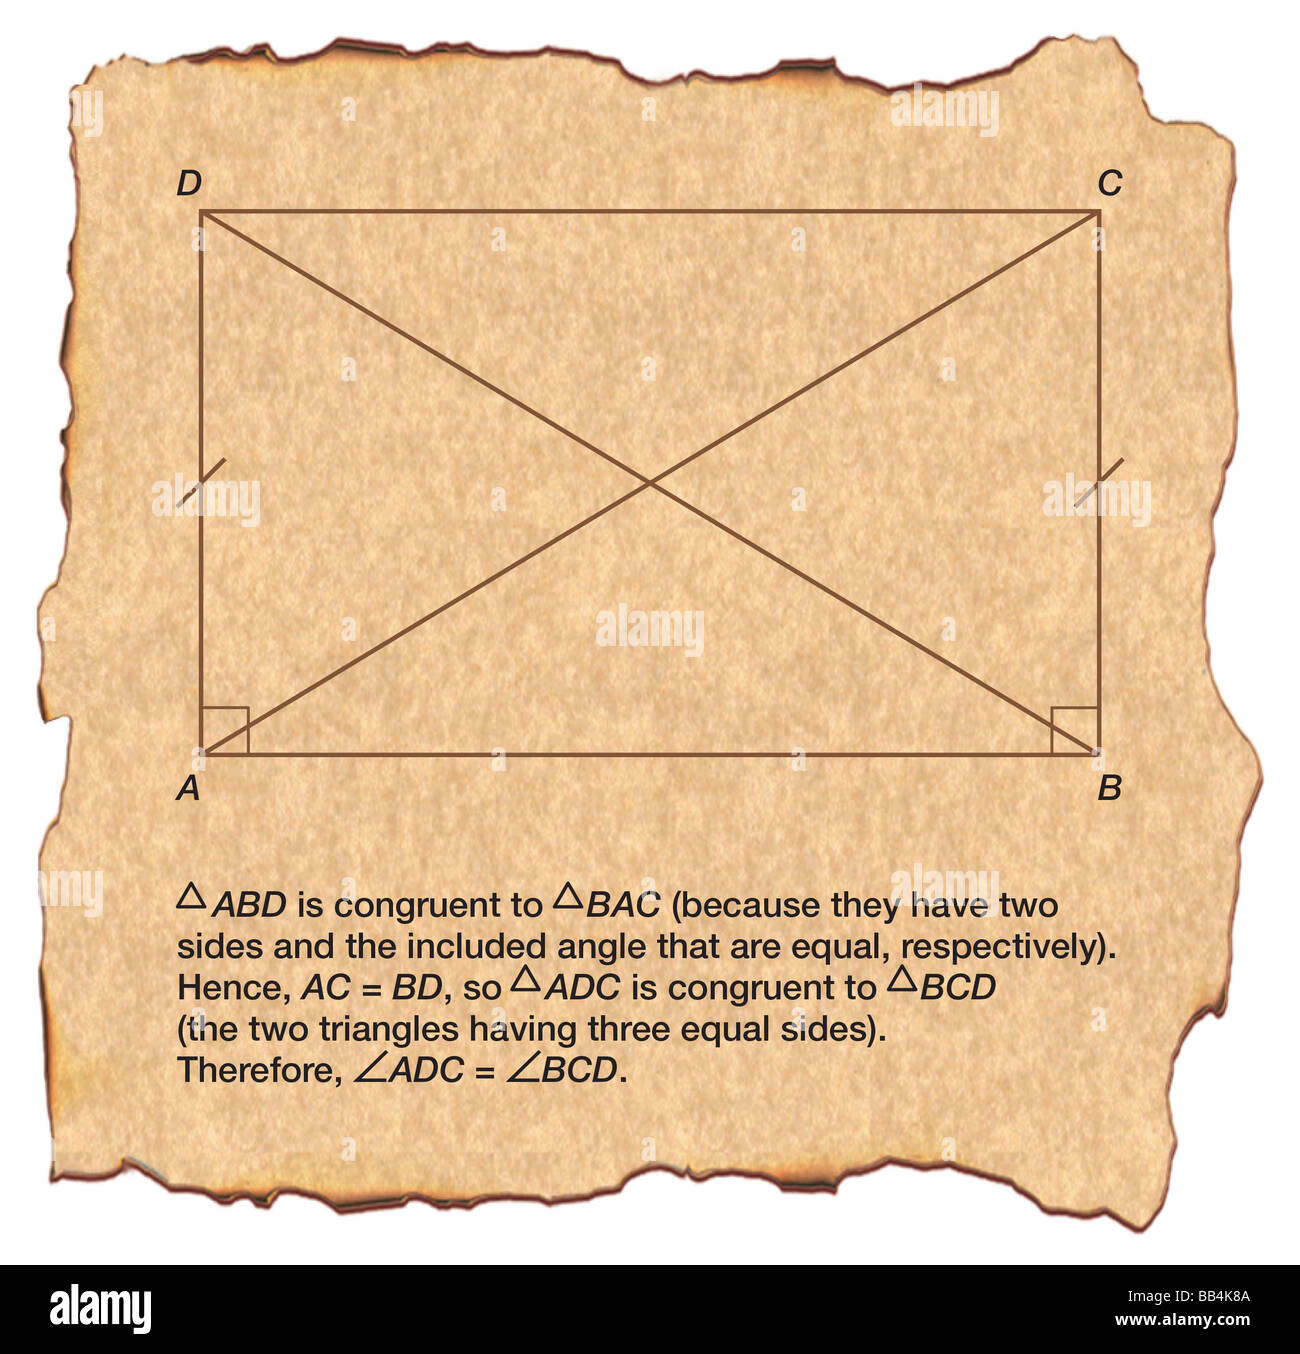 Quadrilateral of Omar Khayyam, constructed in an effort to prove Euclid's postulate concerning parallel lines - Stock Image